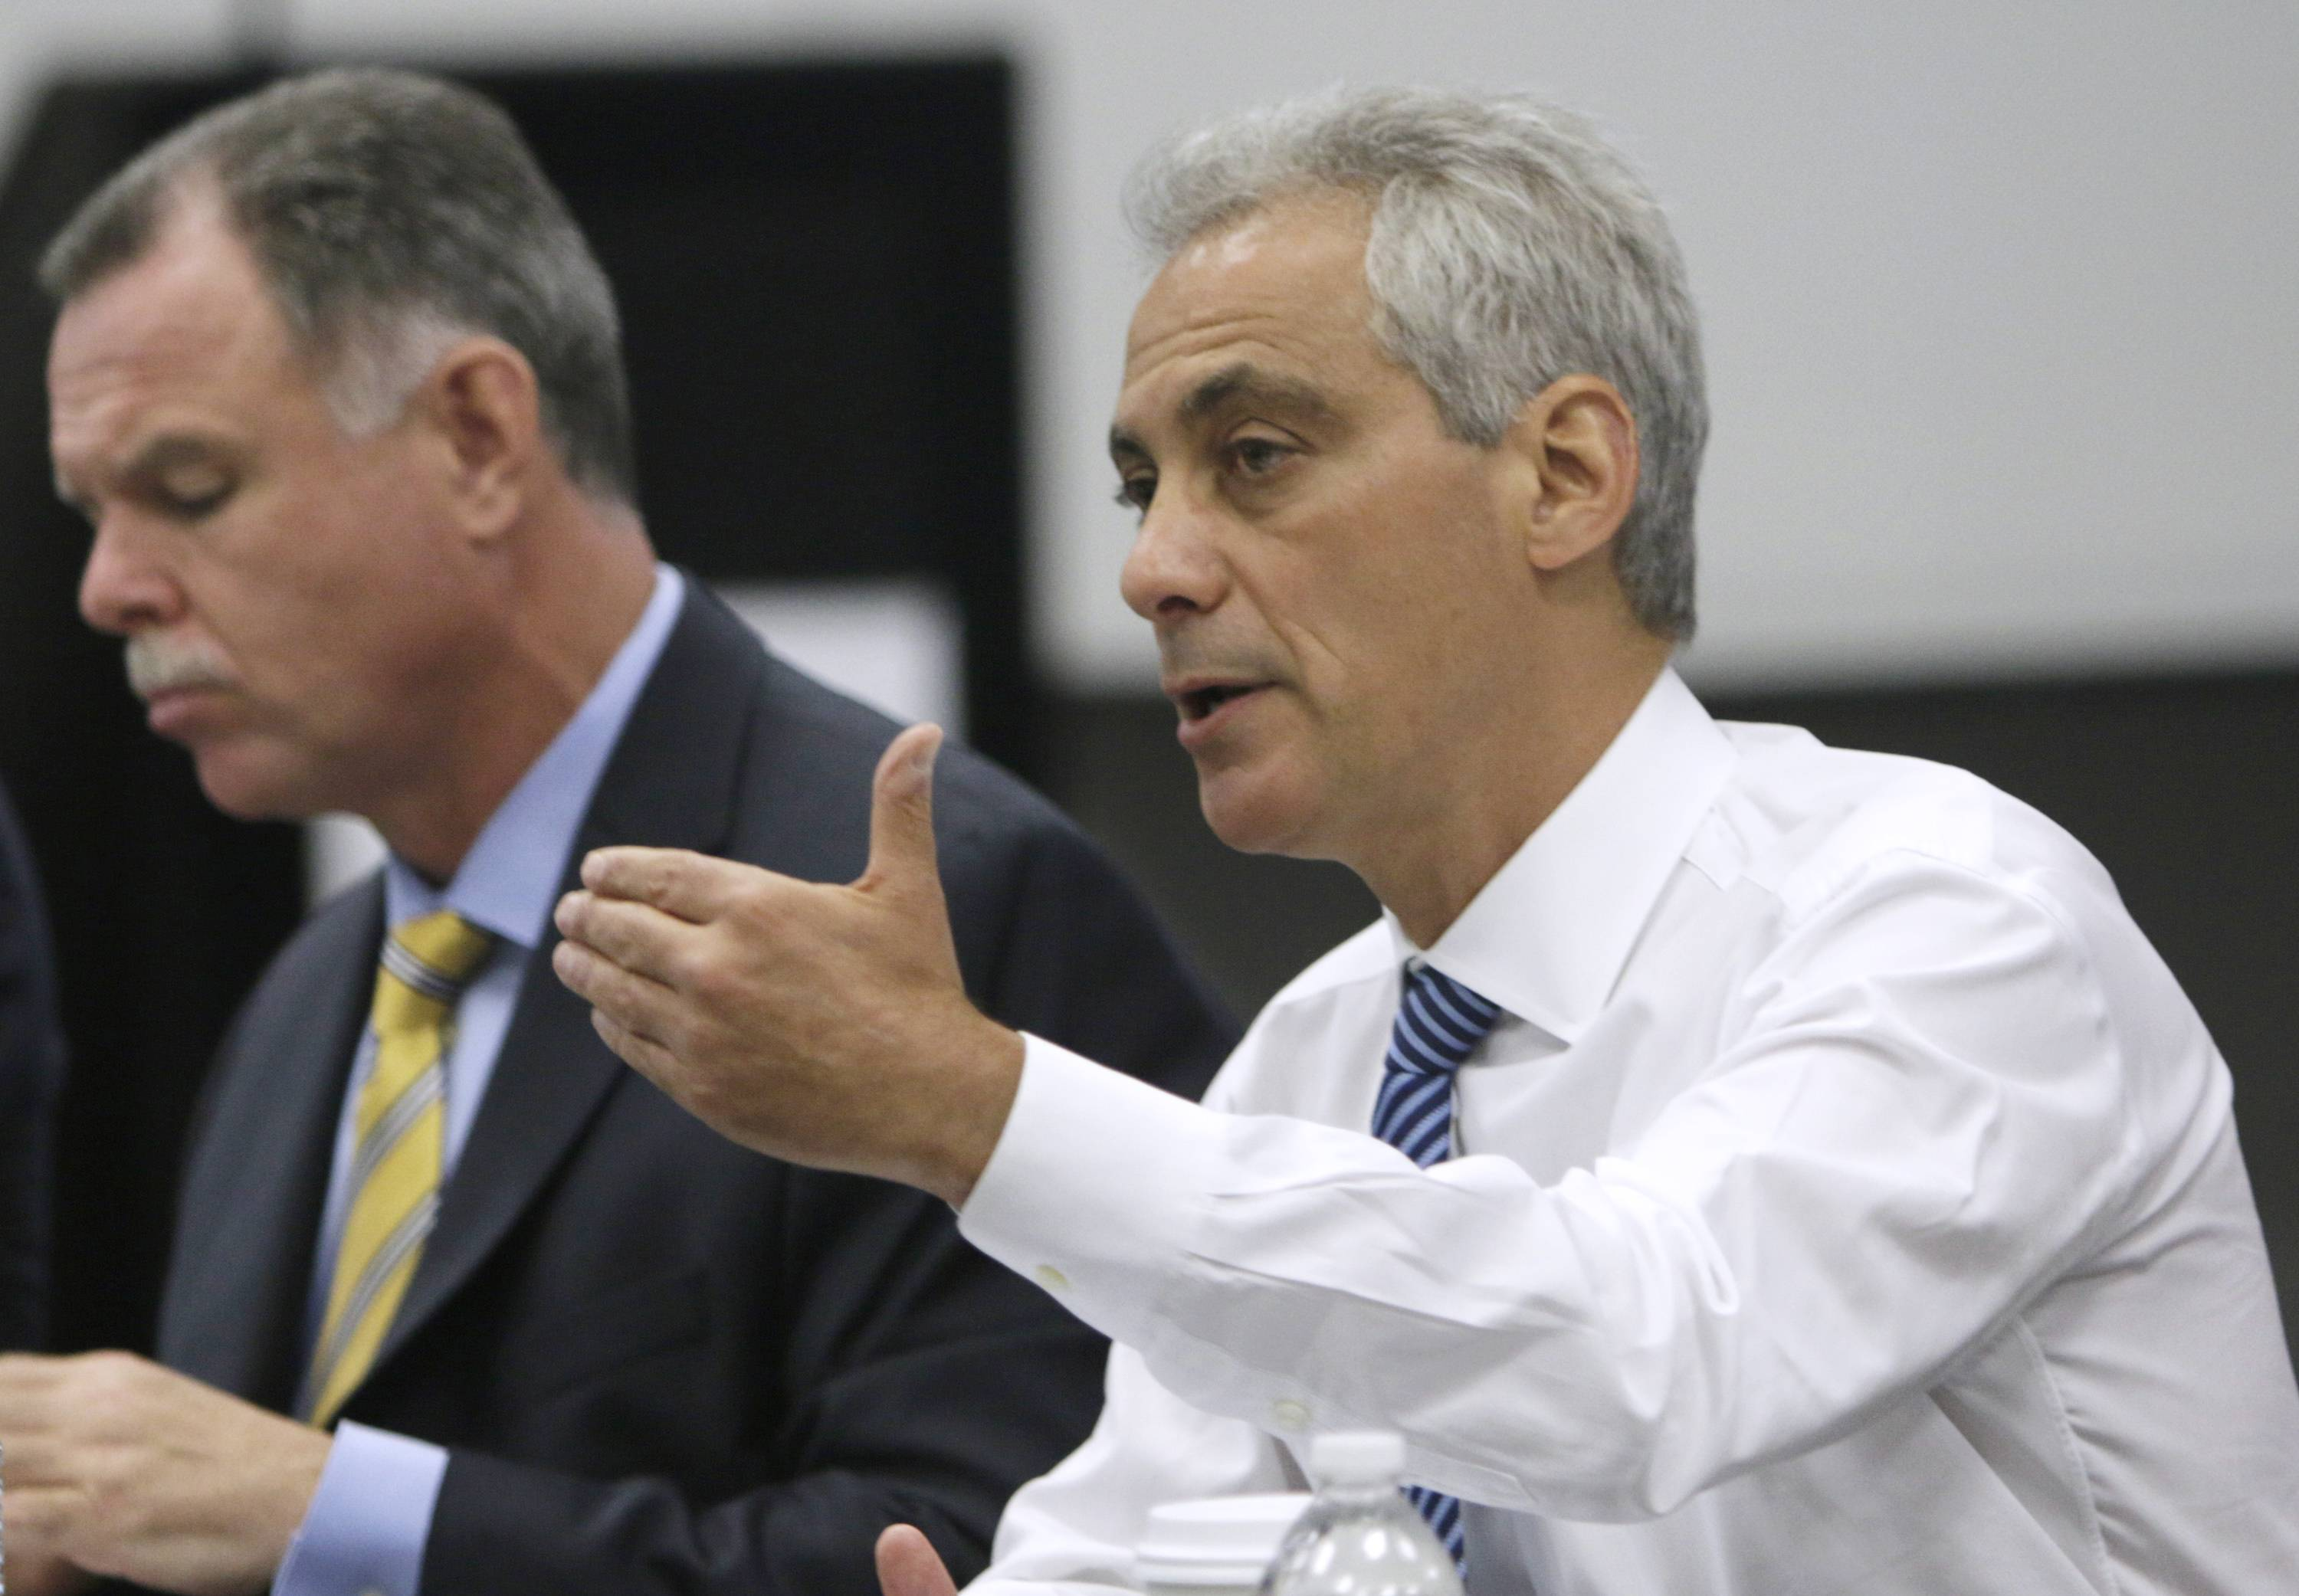 Chicago Mayor Rahm Emanuel, right, speaks while Chicago Police Superintendent Garry McCarthy listens during a news conference Monday. Emanuel met with law enforcement and school officials to talk about the city's violence problem.